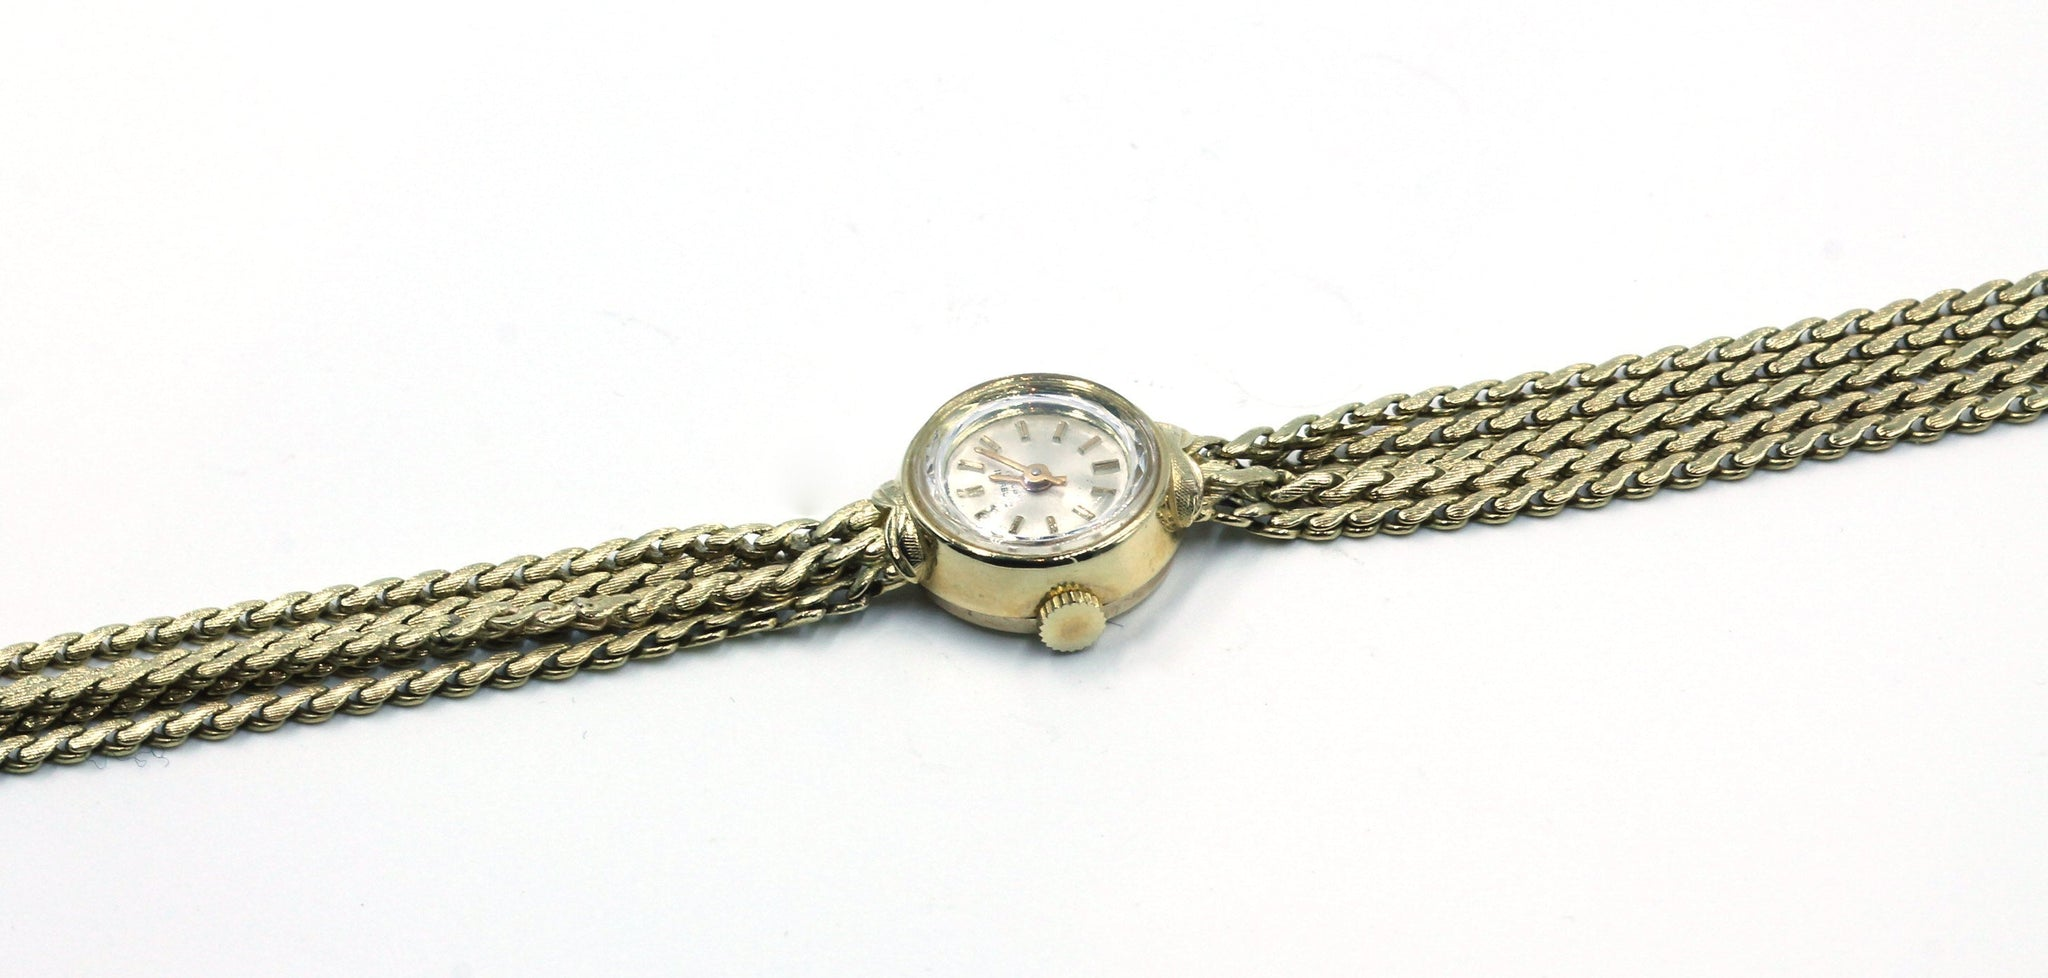 Vintage Gold Watch, SUPER SALE